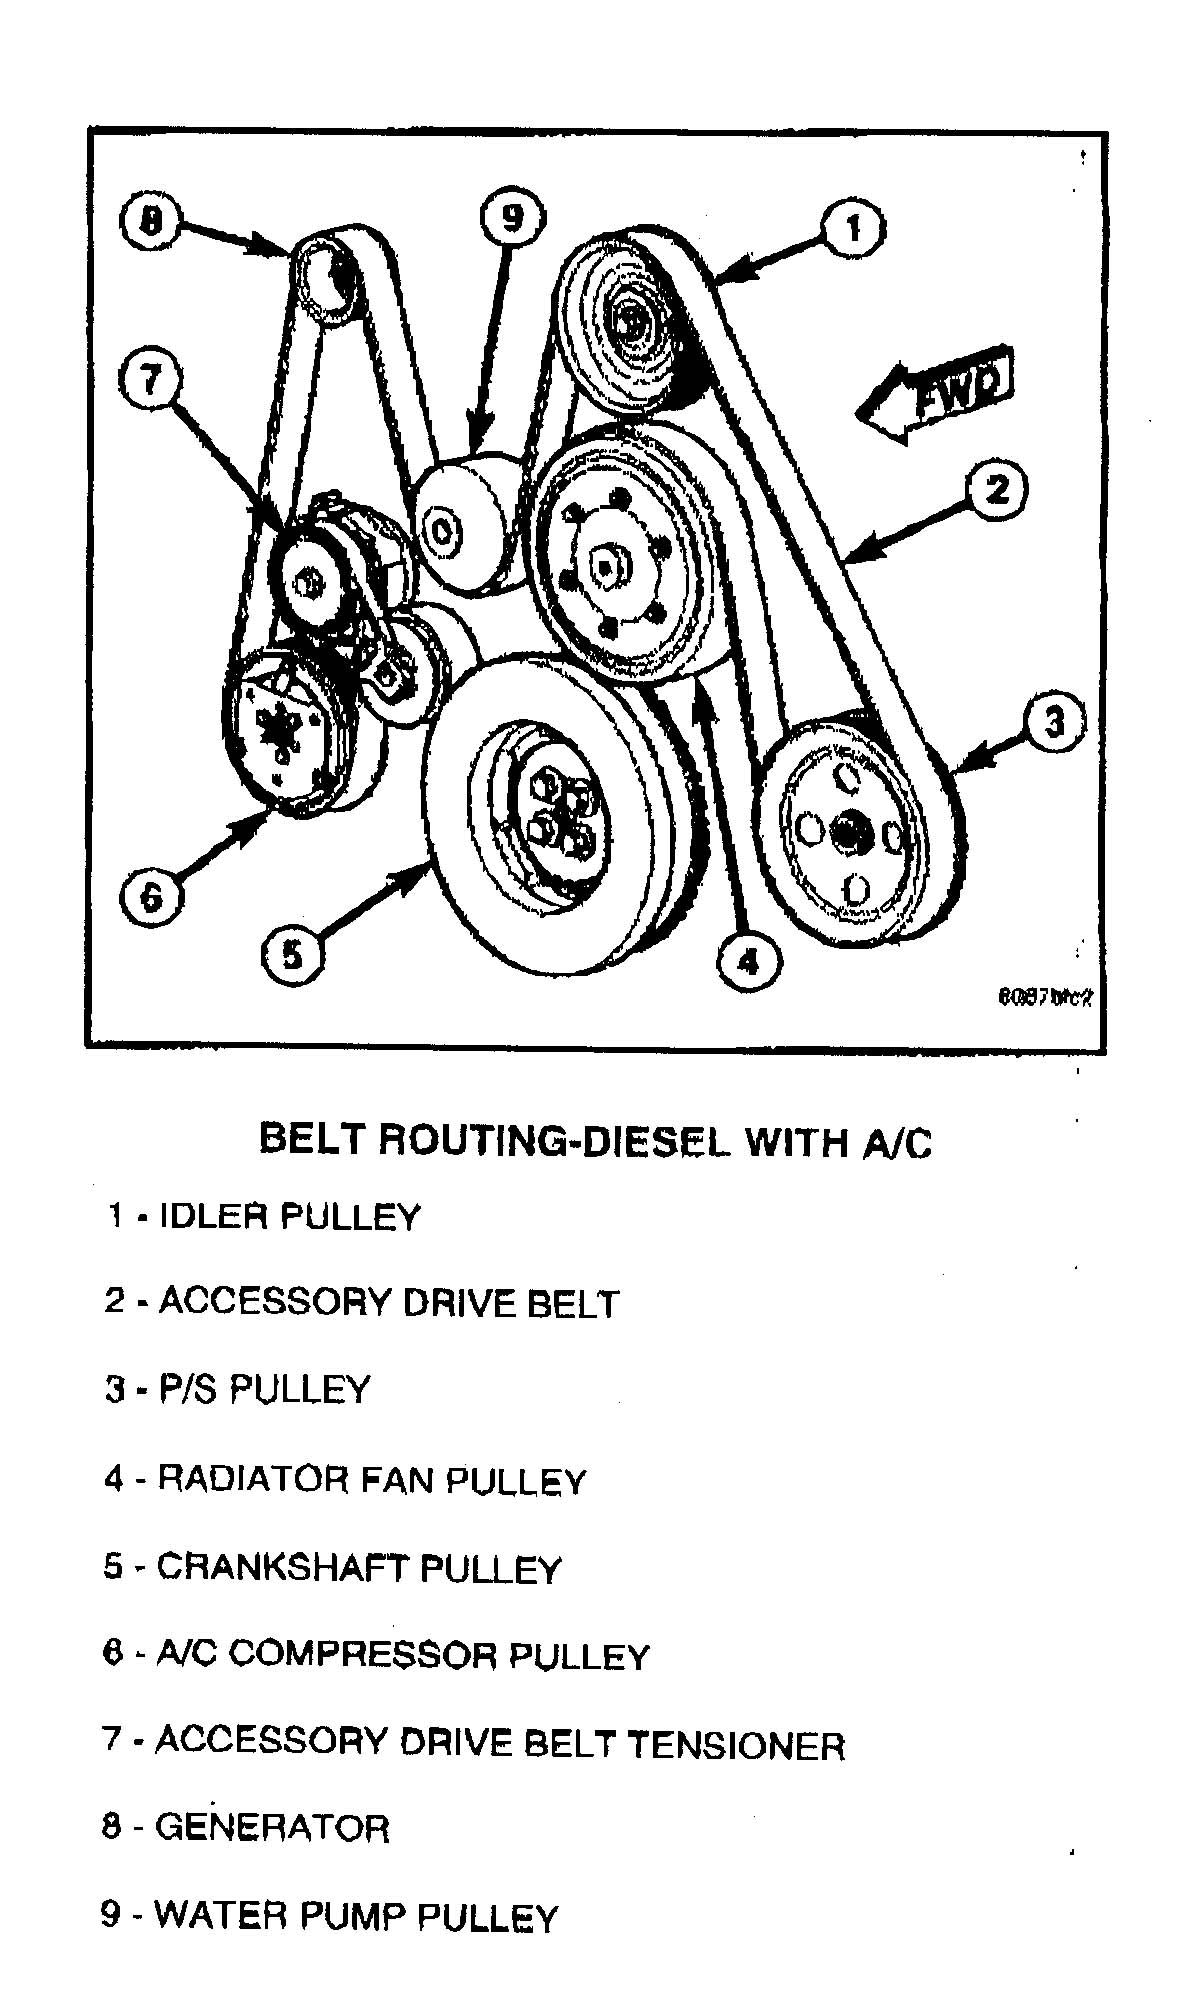 small resolution of 6 7 belt routing diagram dodge diesel diesel truck resource 2012 dodge ram 2500 6 7 serpentine belt diagram